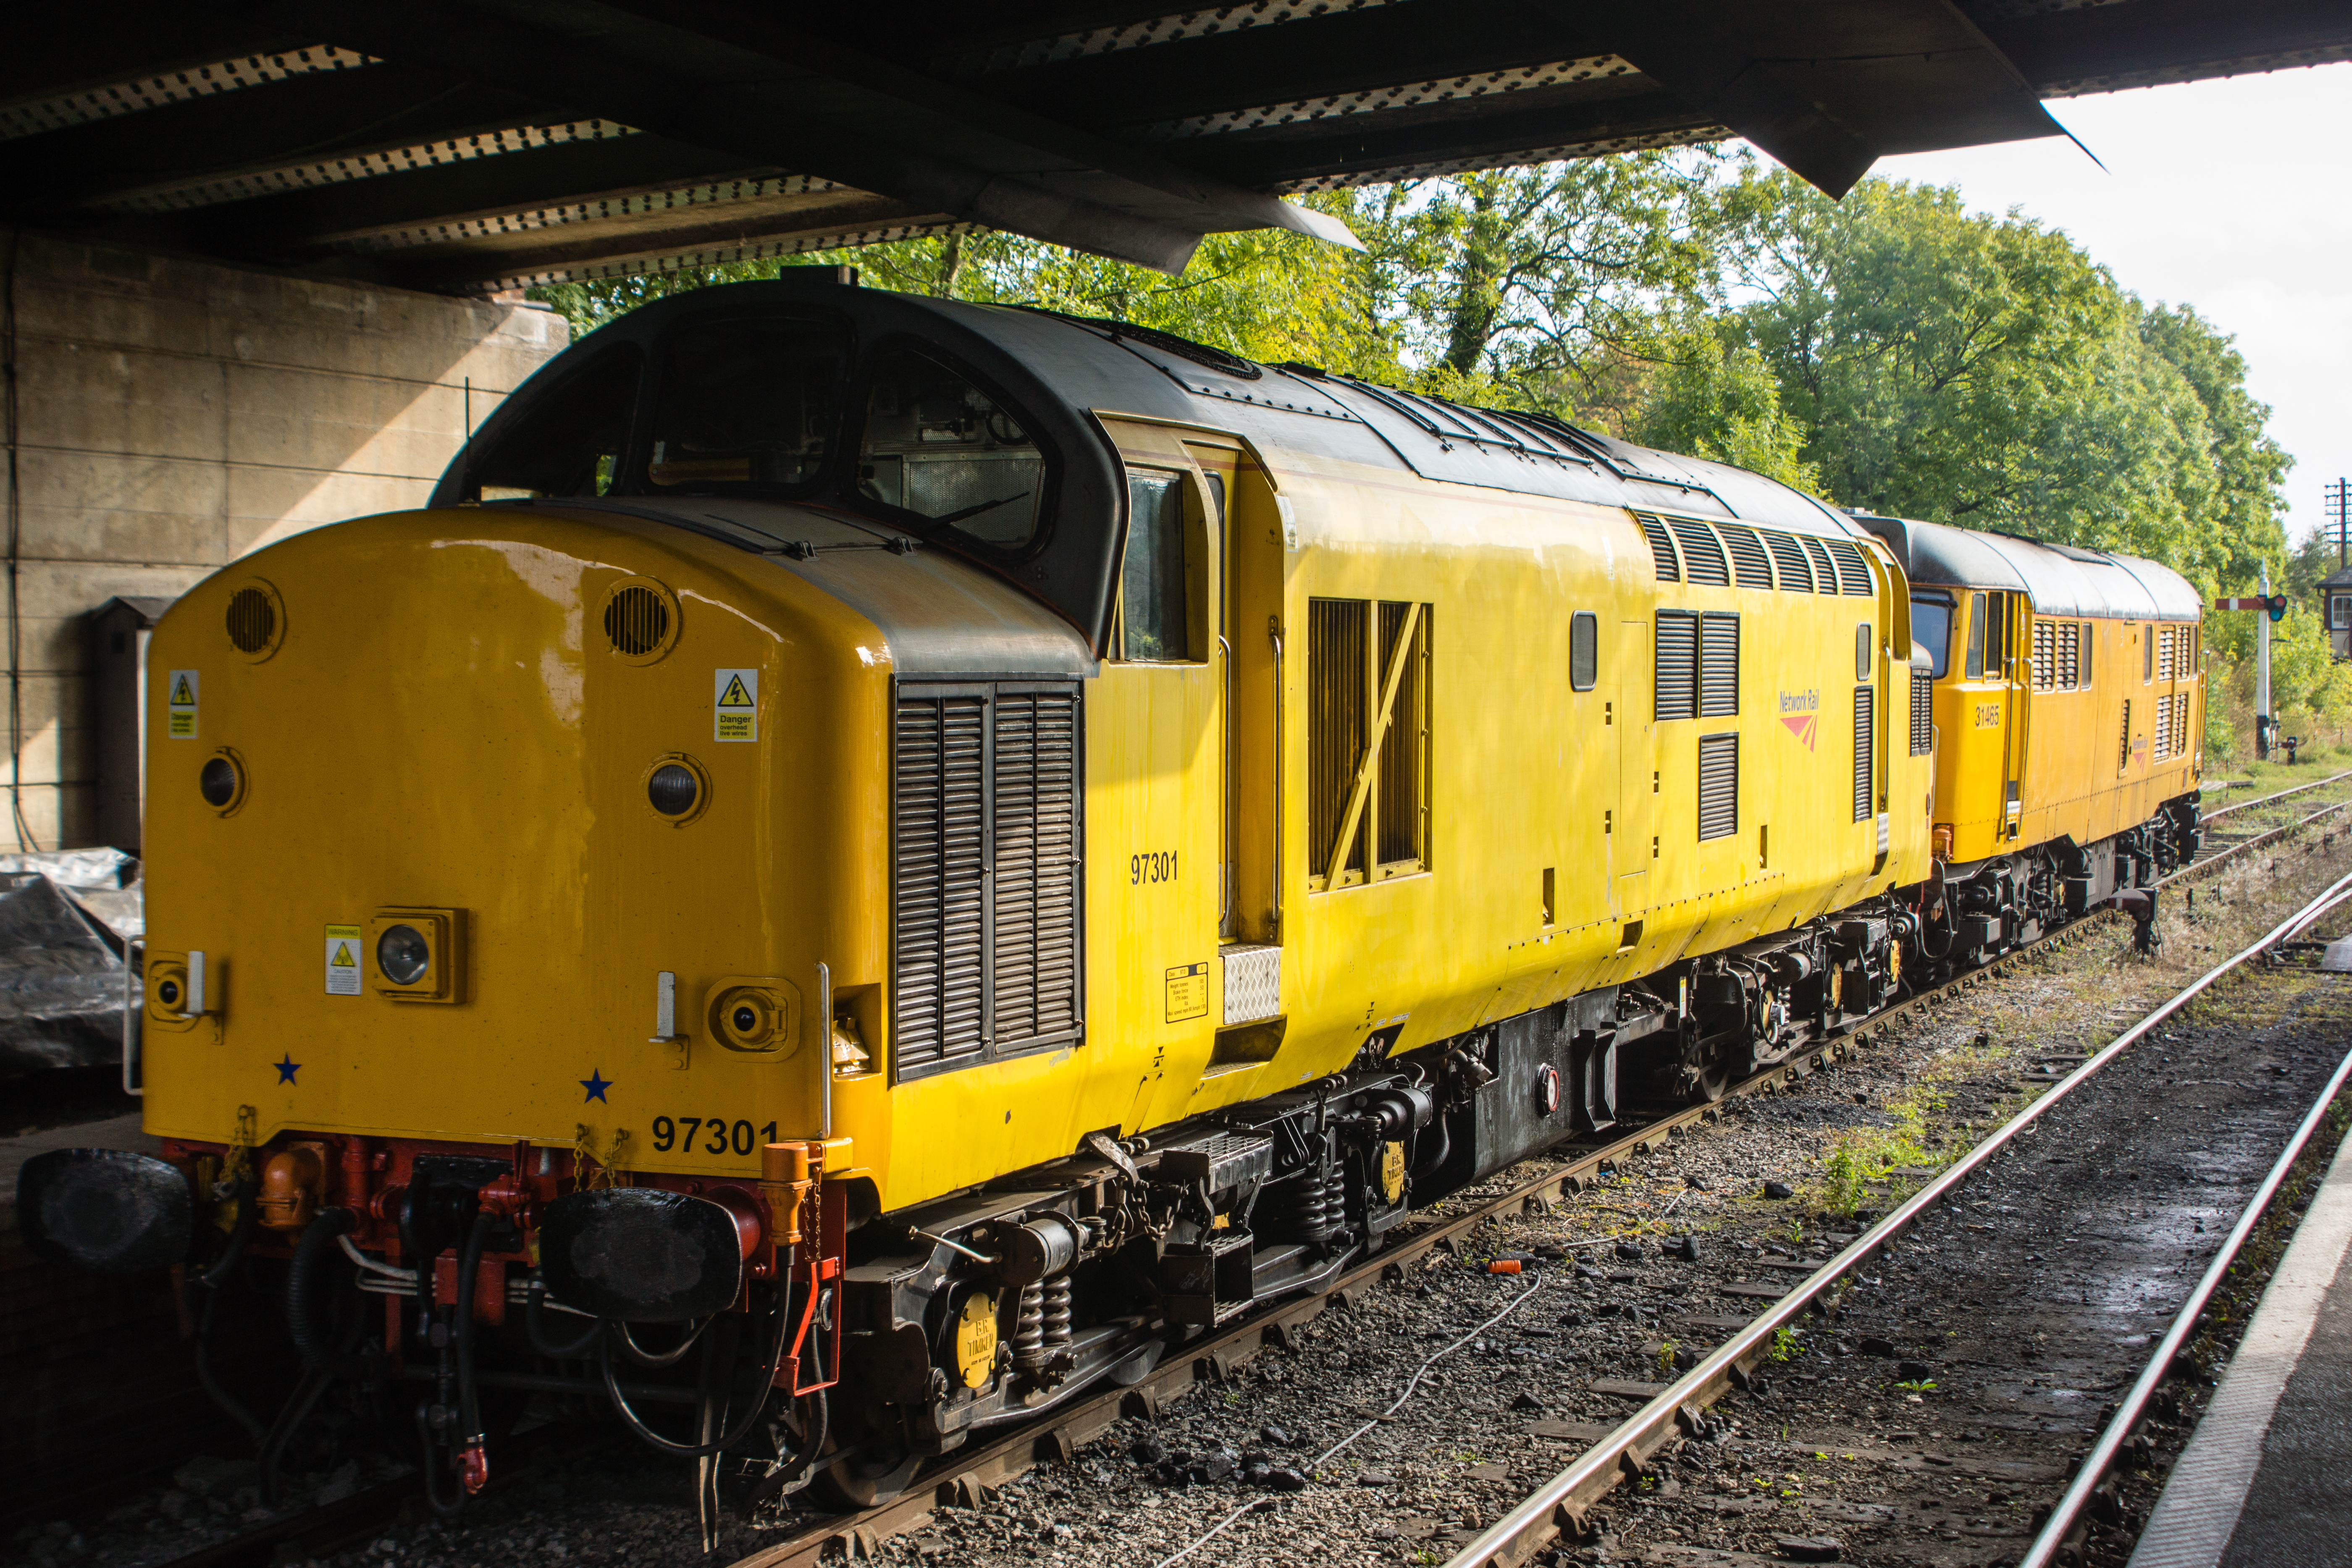 97301 and 31465 under the bridge at Butterley station.